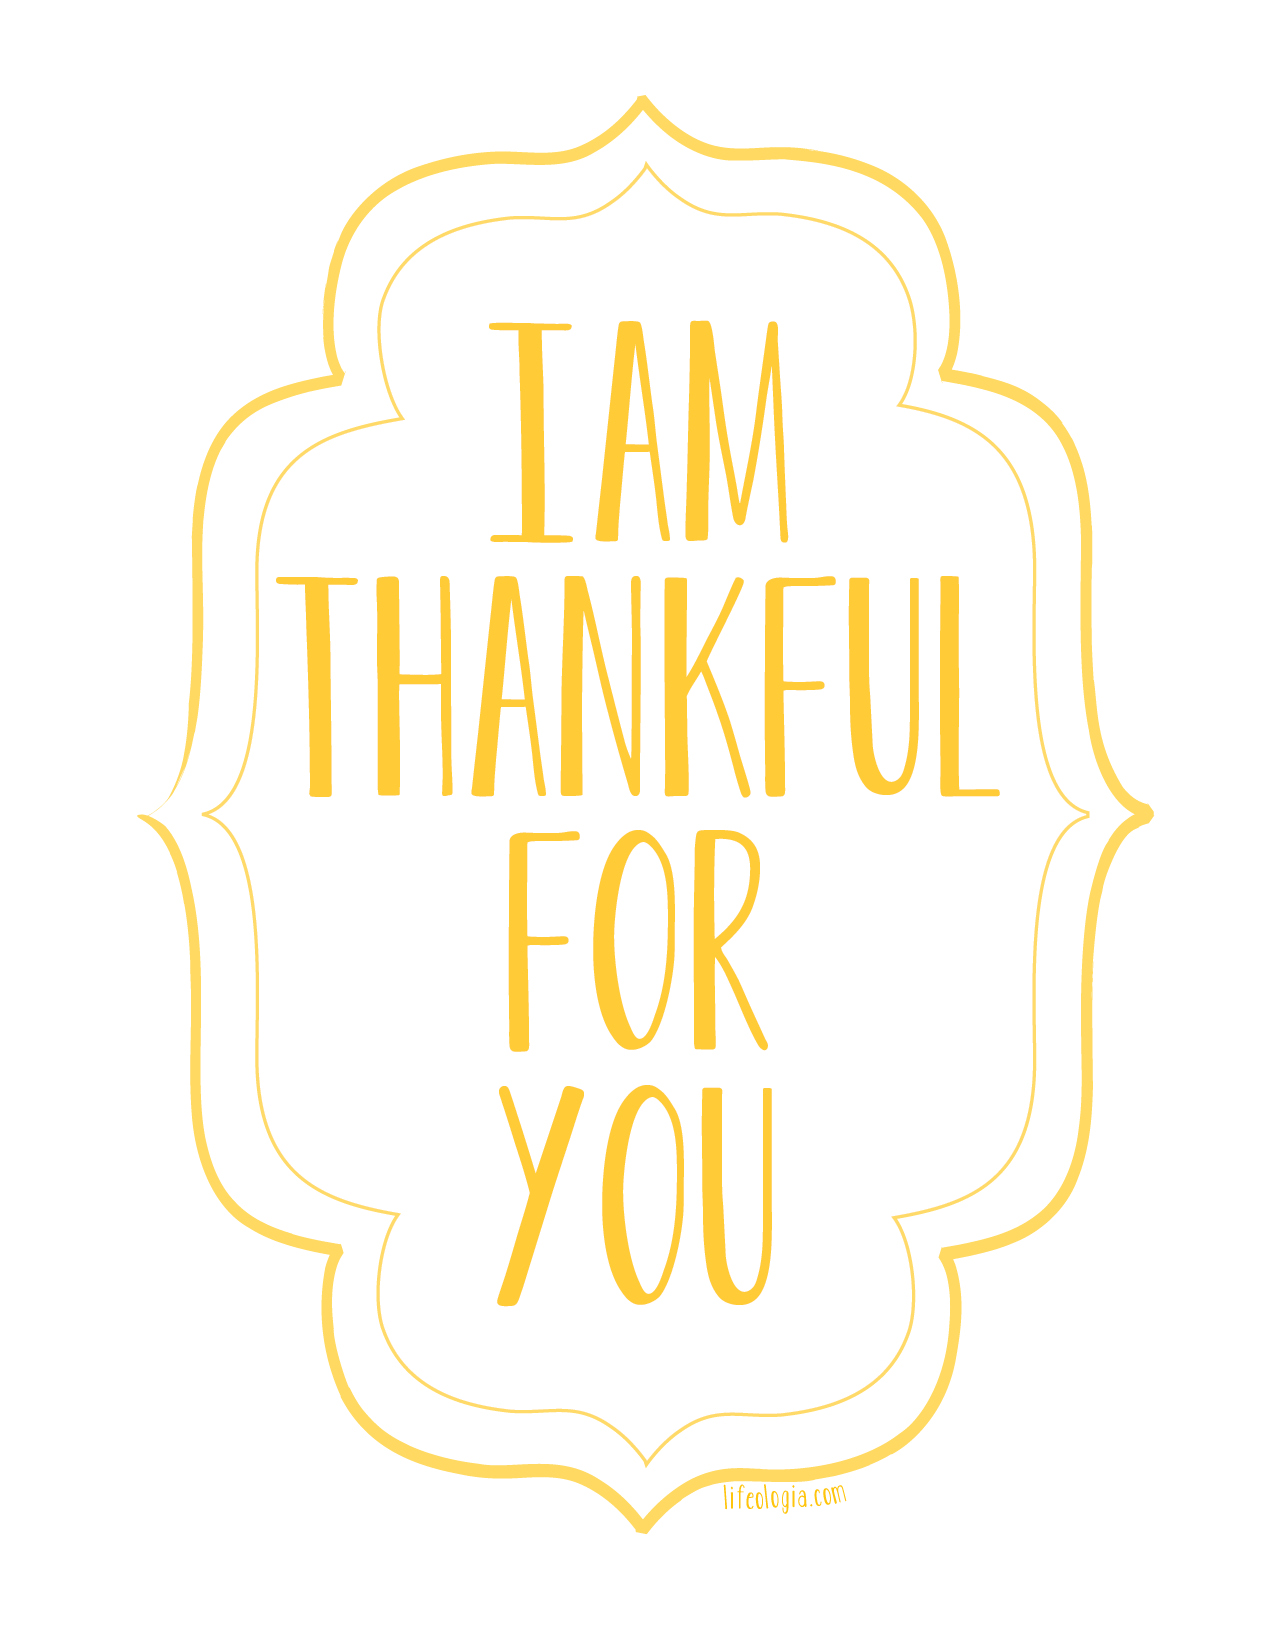 I Am Thankful For You Free Printable Posters